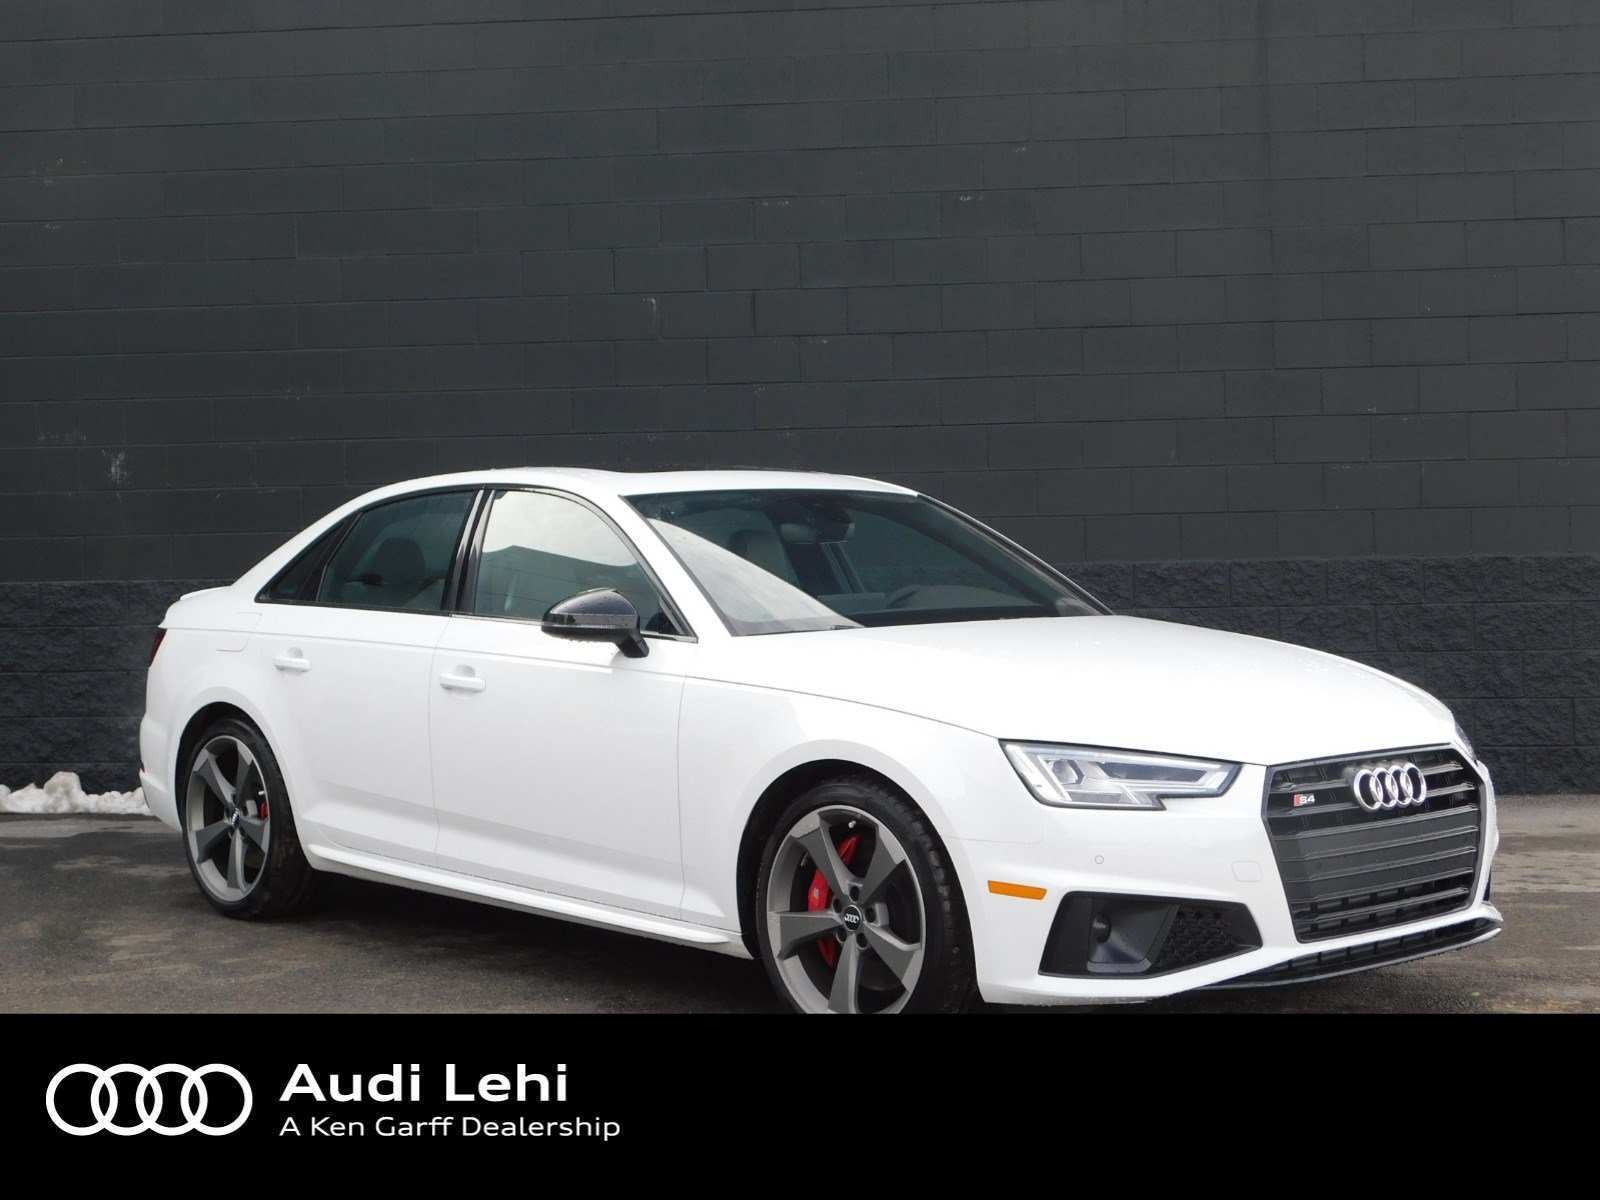 68 The Best 2019 Audi S4 Price And Review